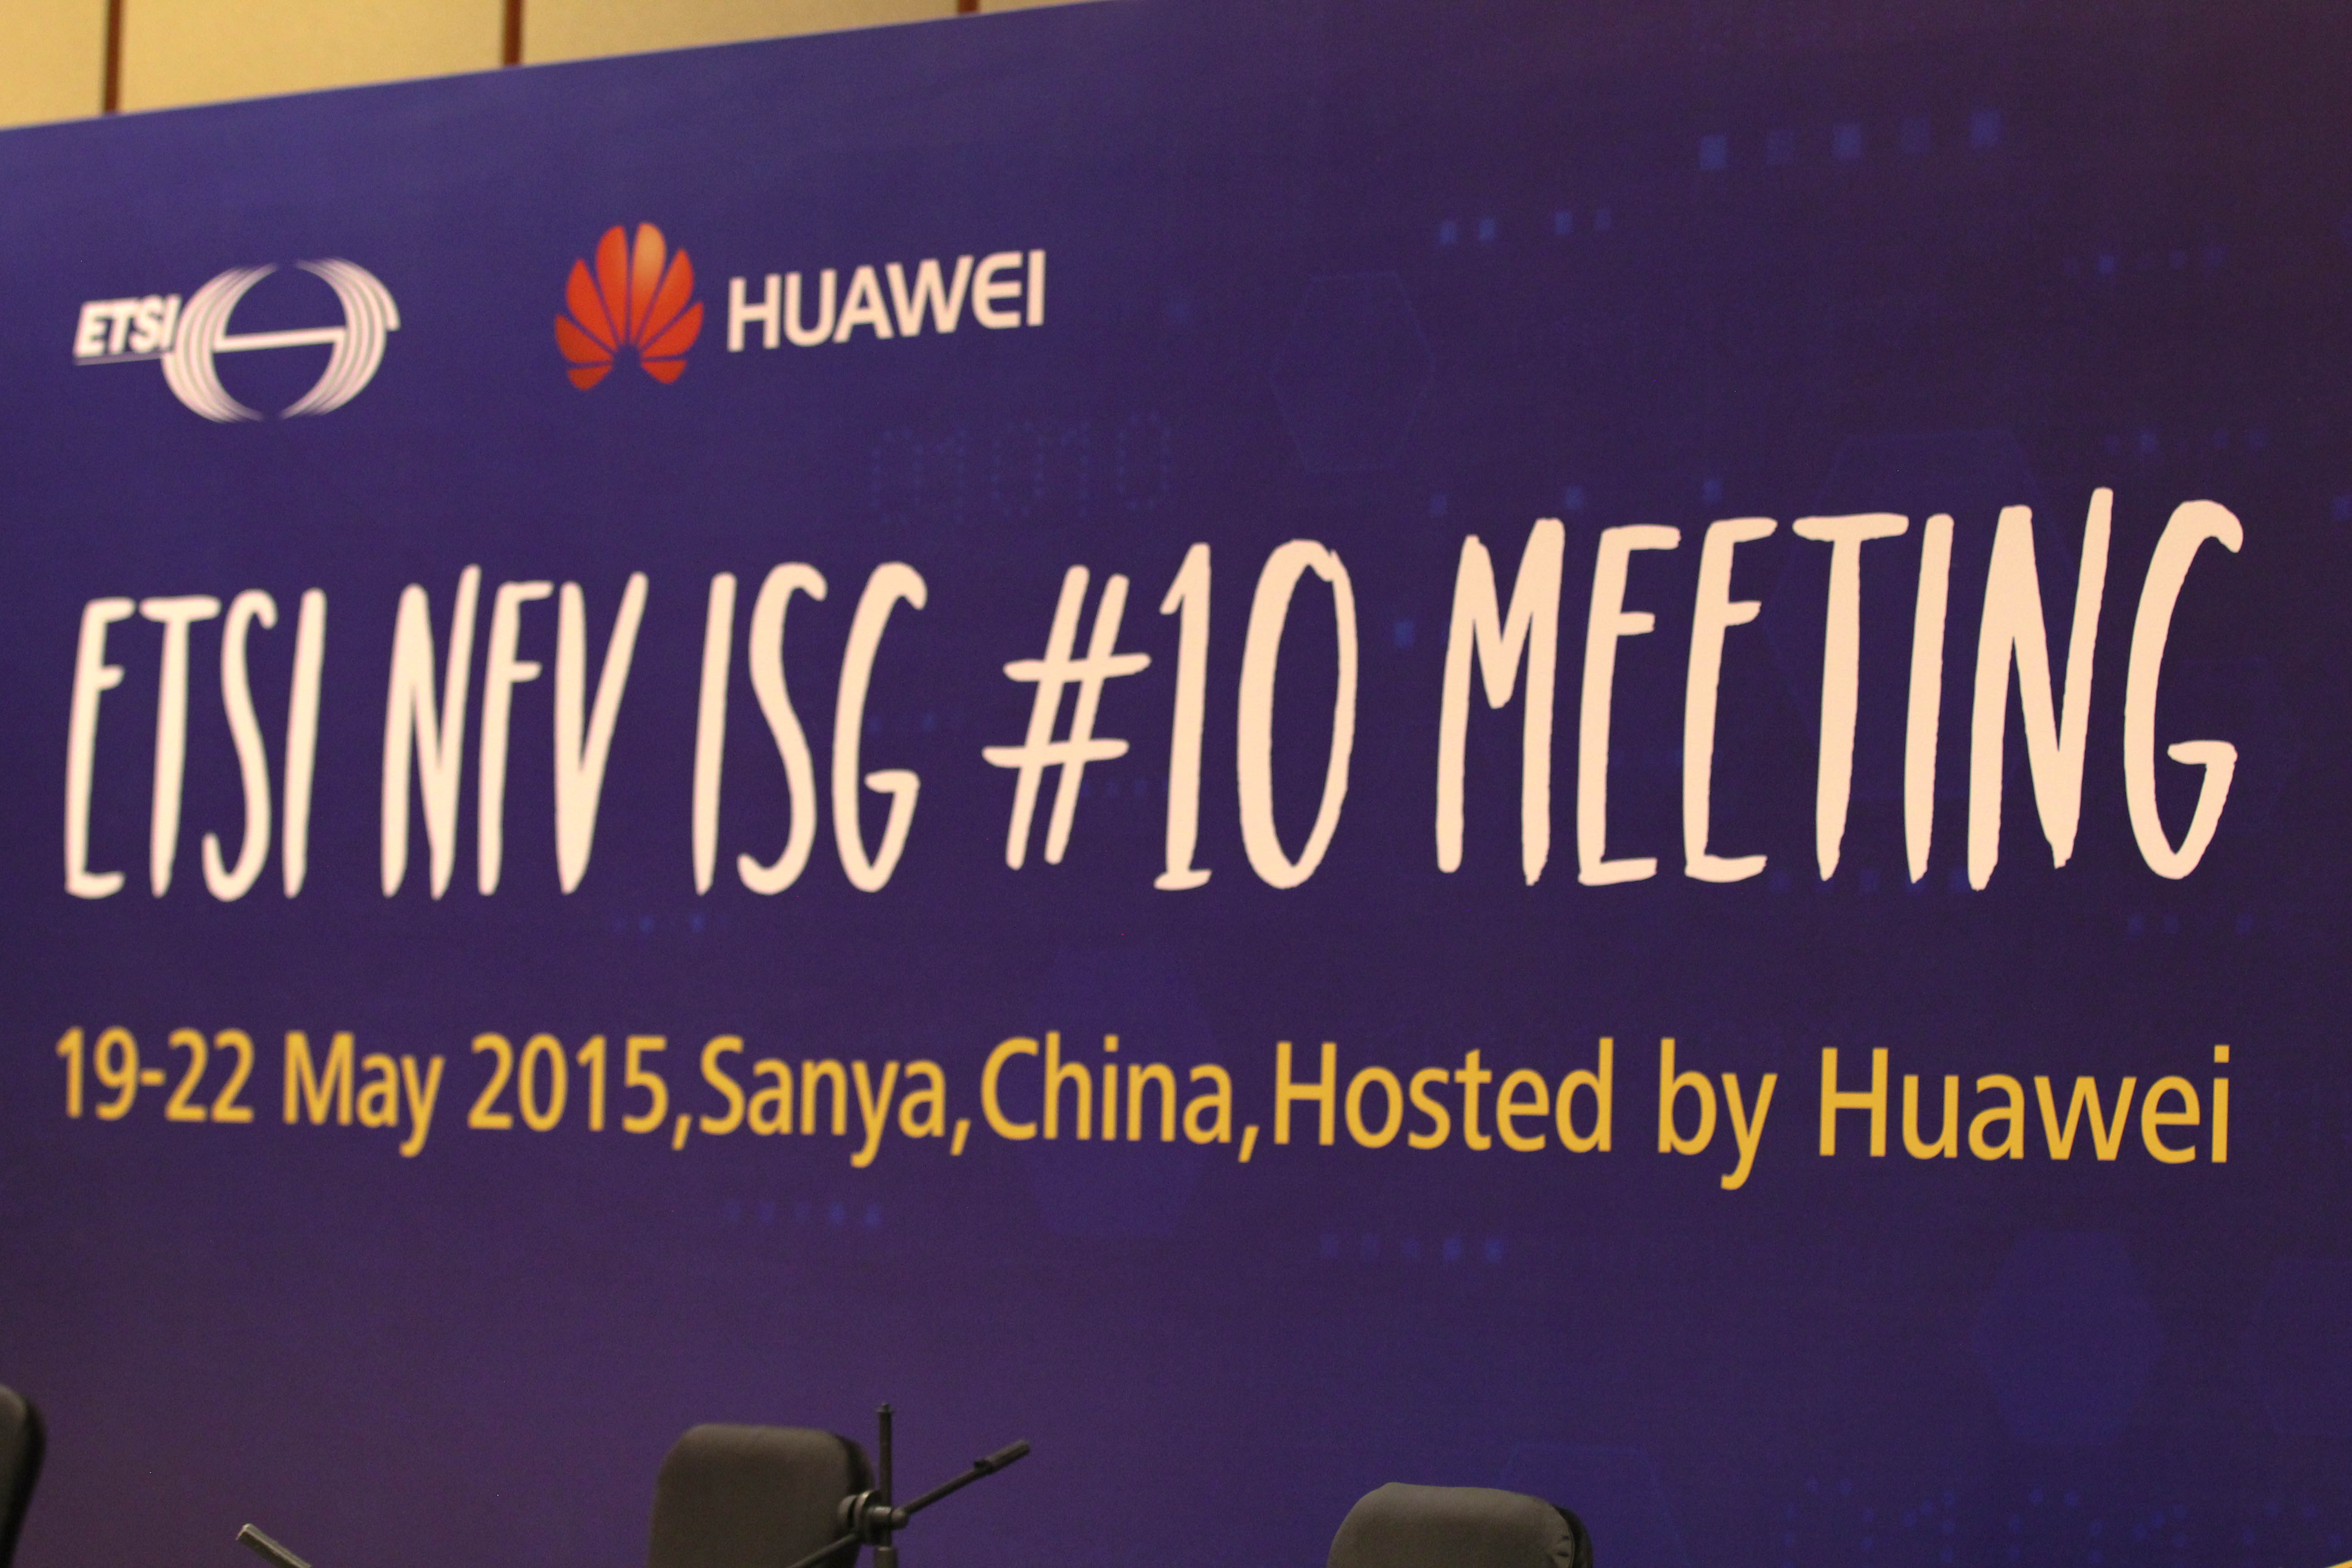 nfv10-Welcome